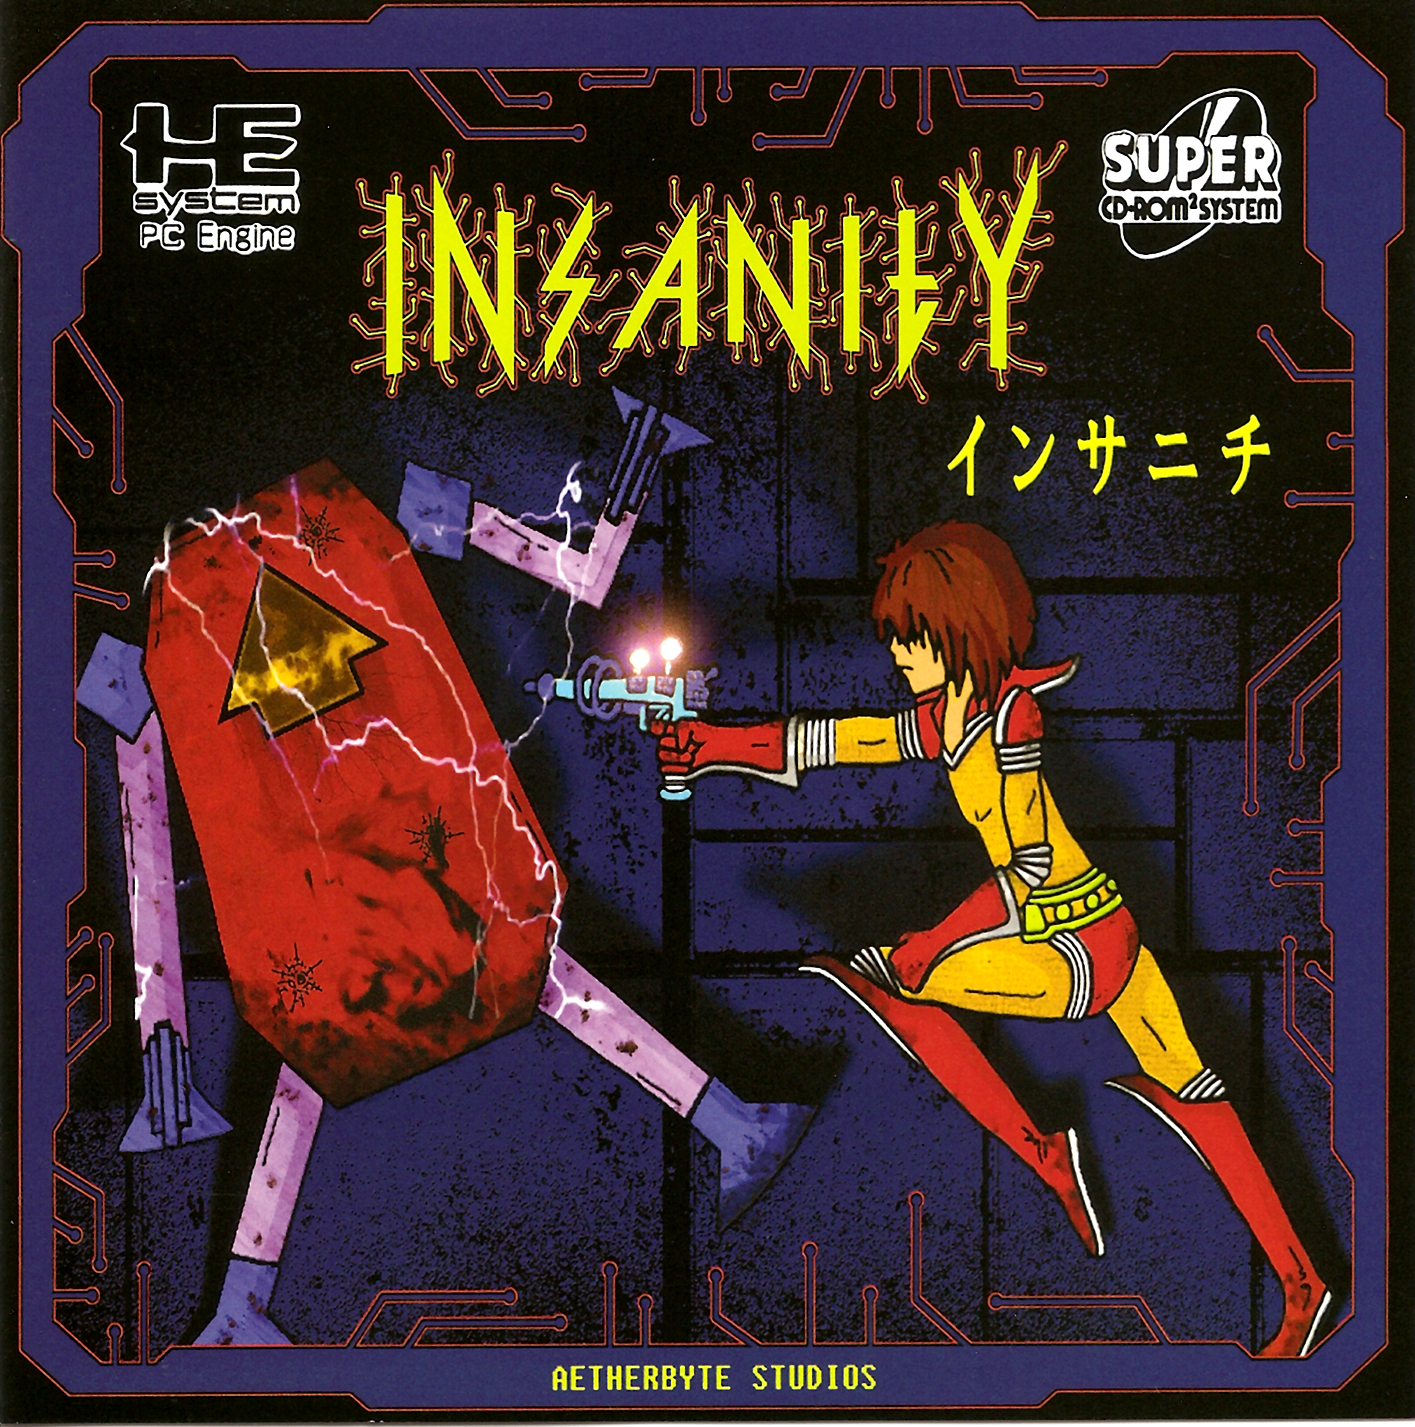 Insanity - The PC Engine Software Bible